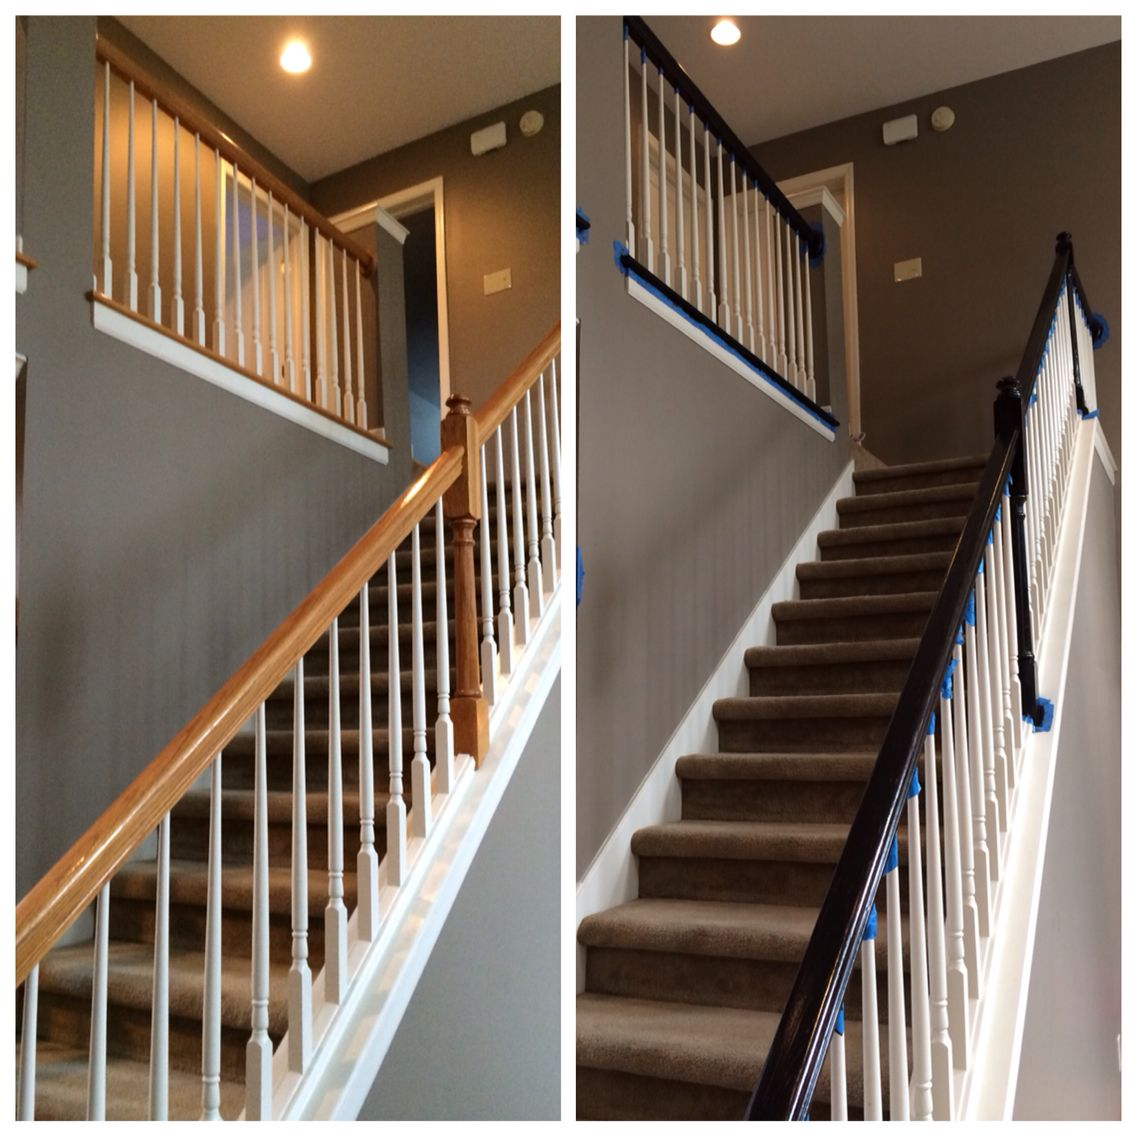 Best Painted Banister Railing To Match Updated Floors Minwax 400 x 300